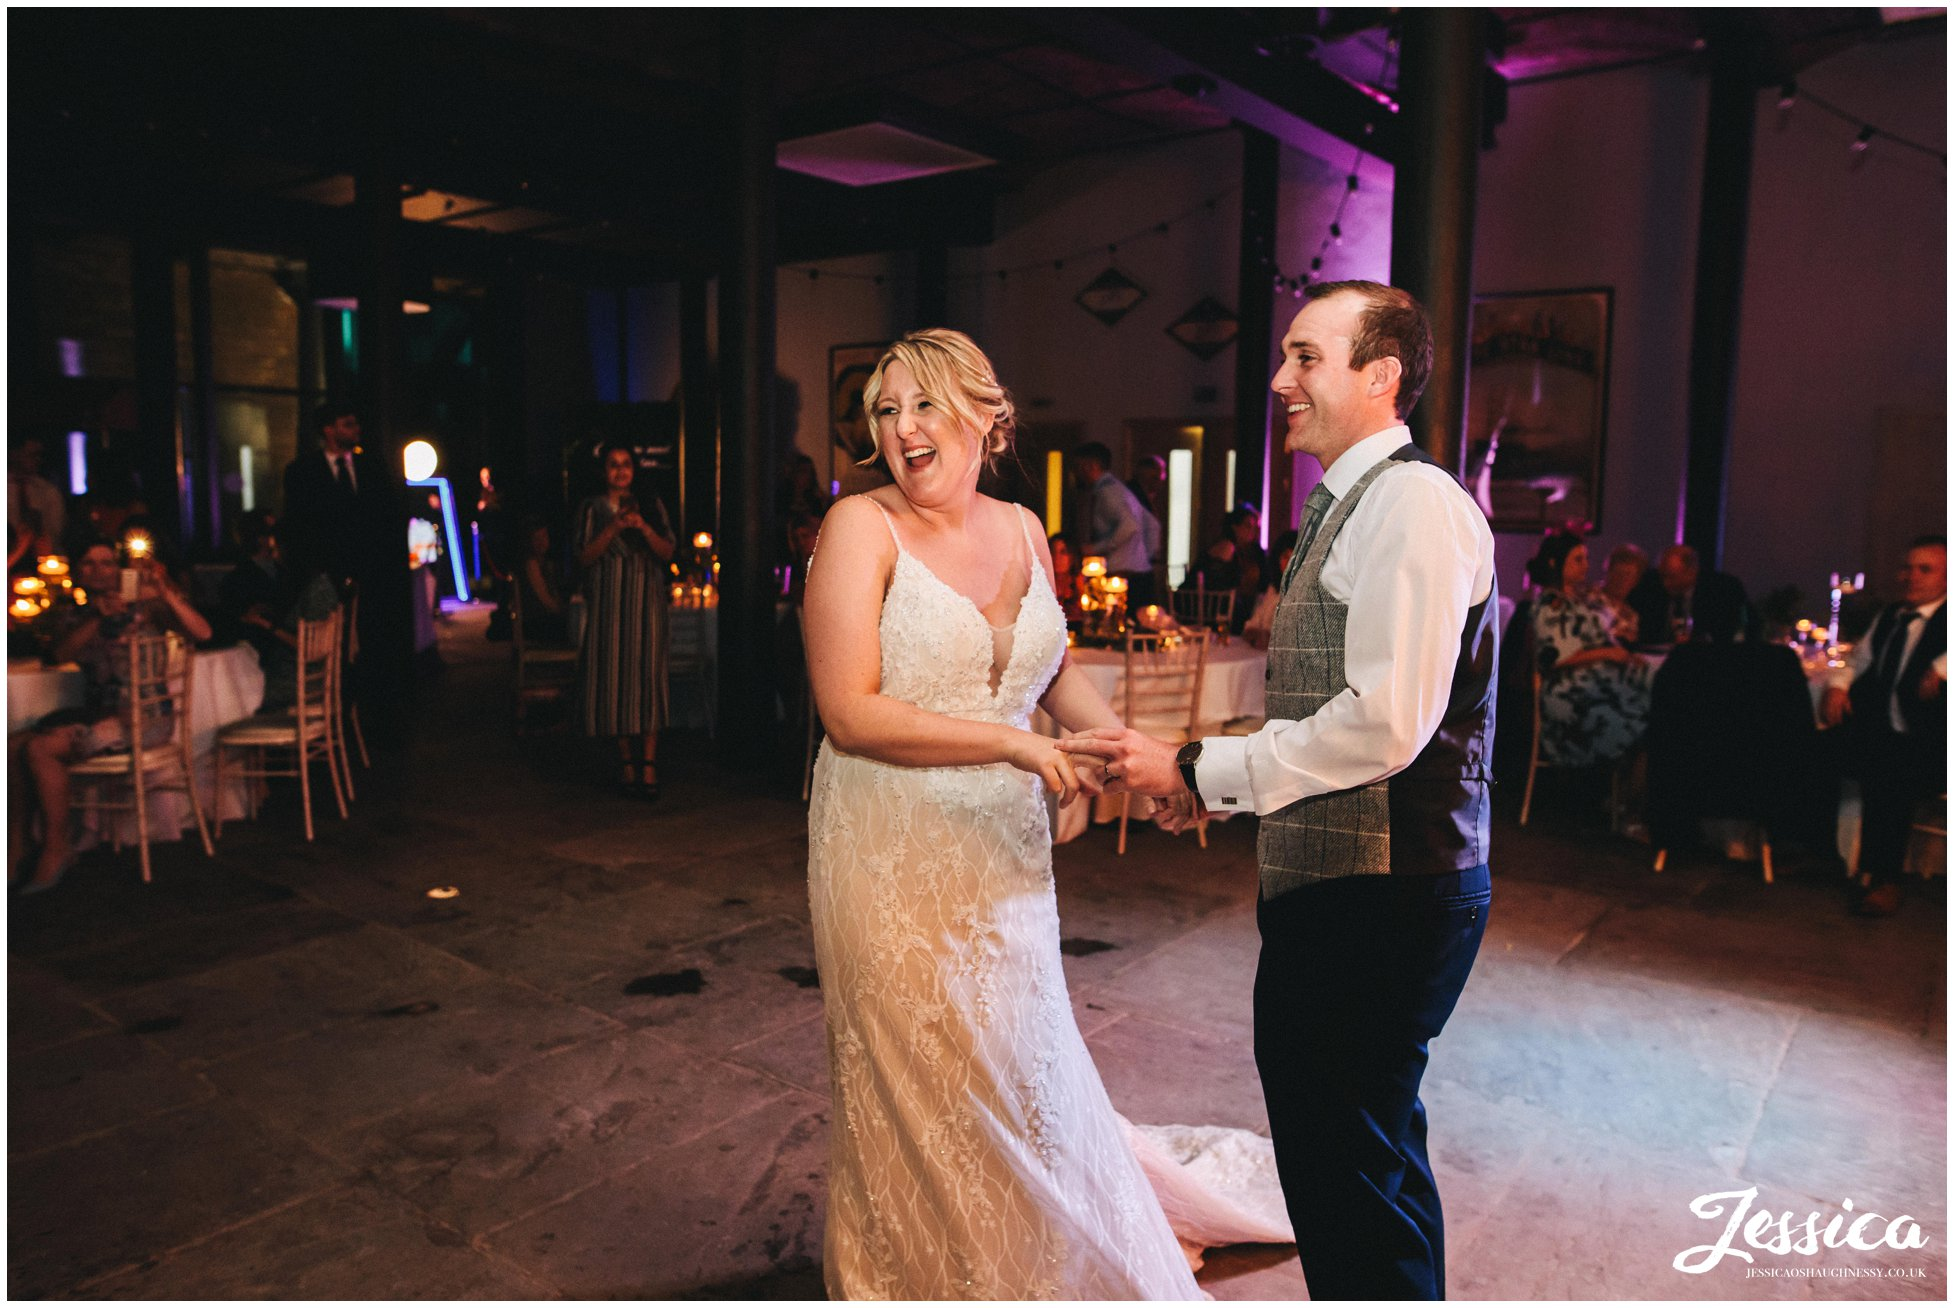 the newly wed's laugh during their first dance